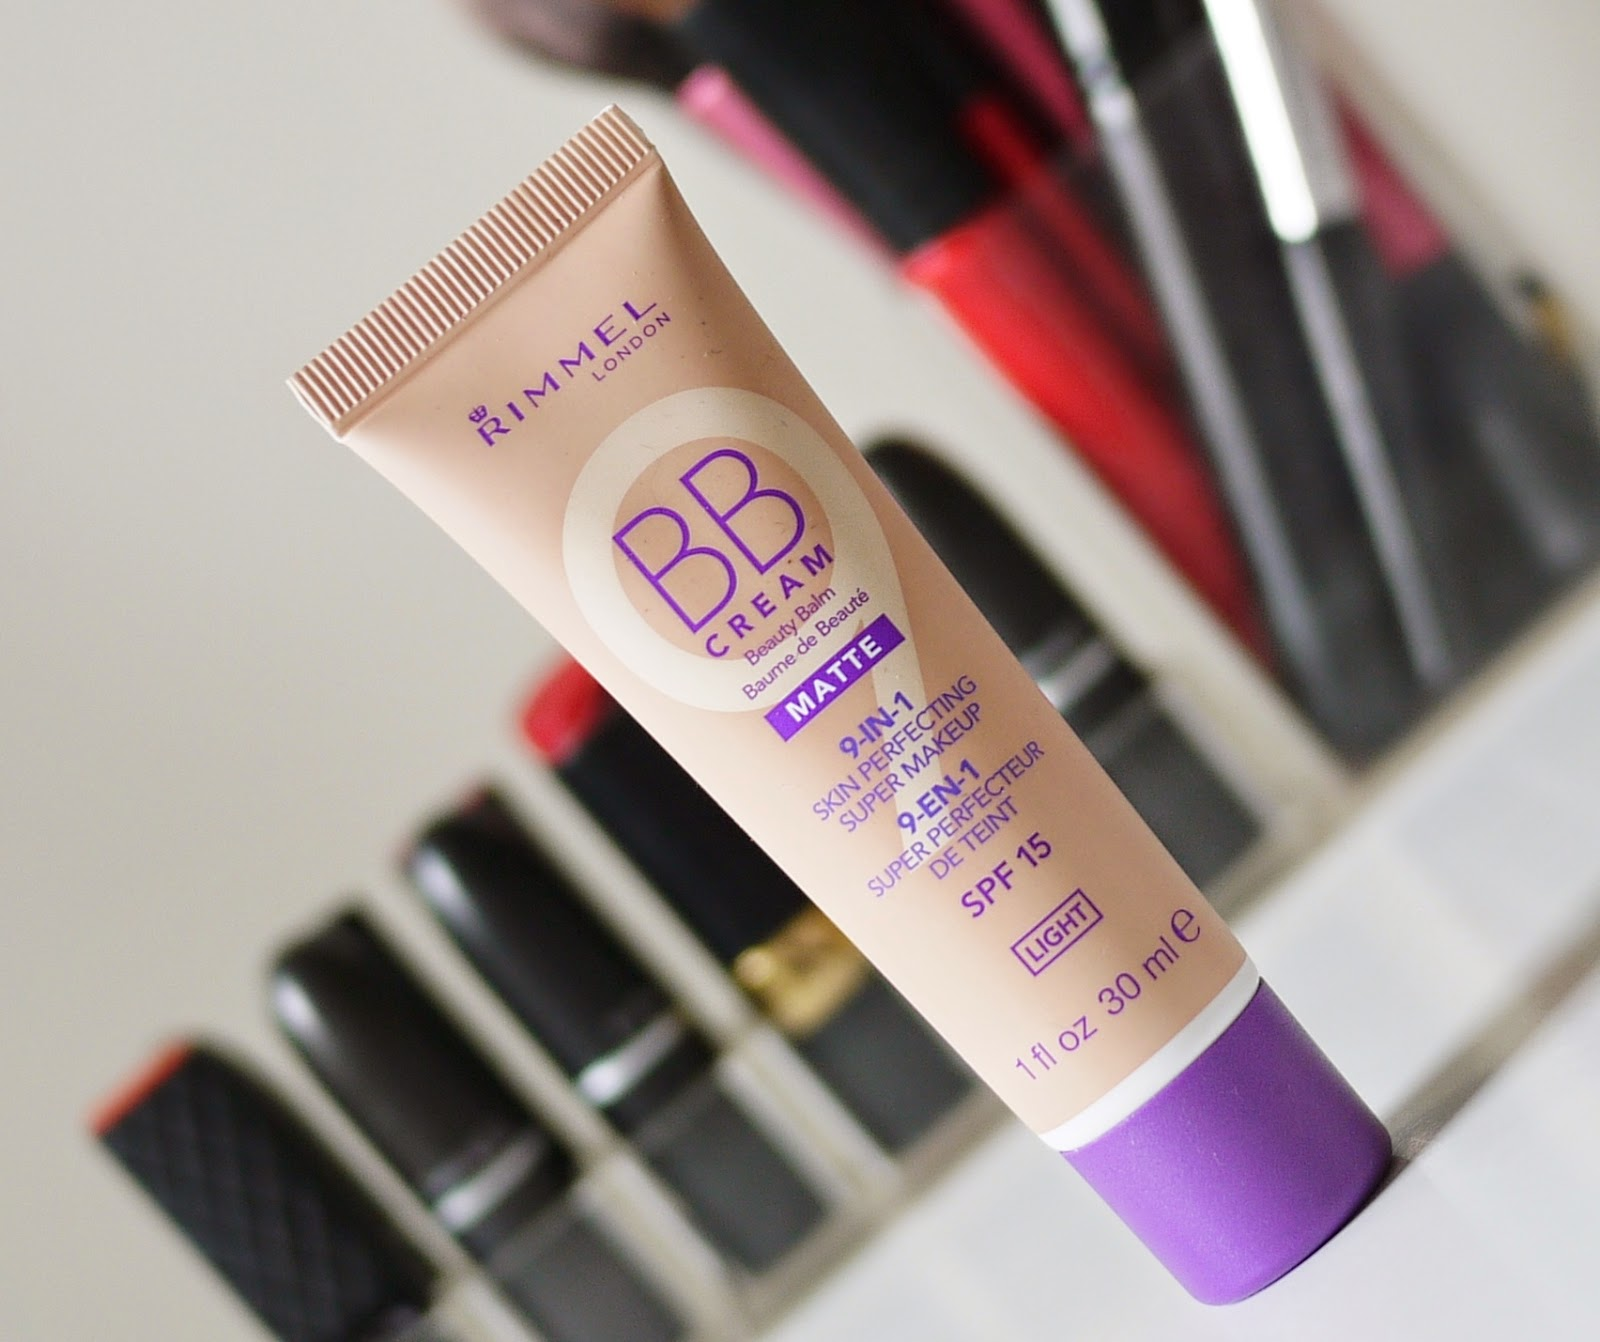 making up 4 my age review rimmel bb cream matte. Black Bedroom Furniture Sets. Home Design Ideas